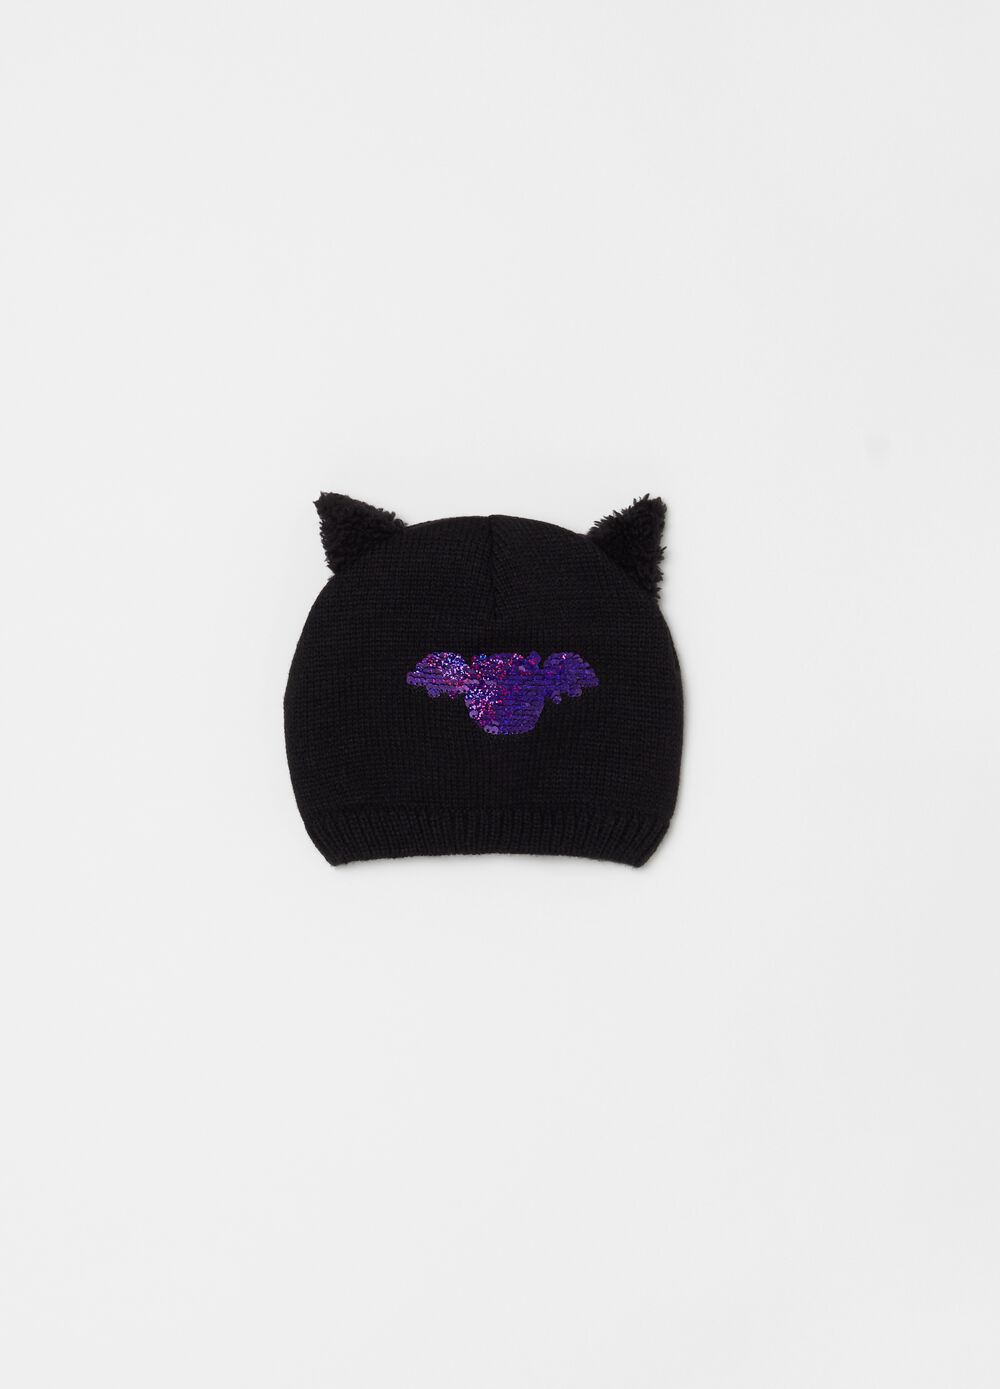 Knitted hat with bat embroidery